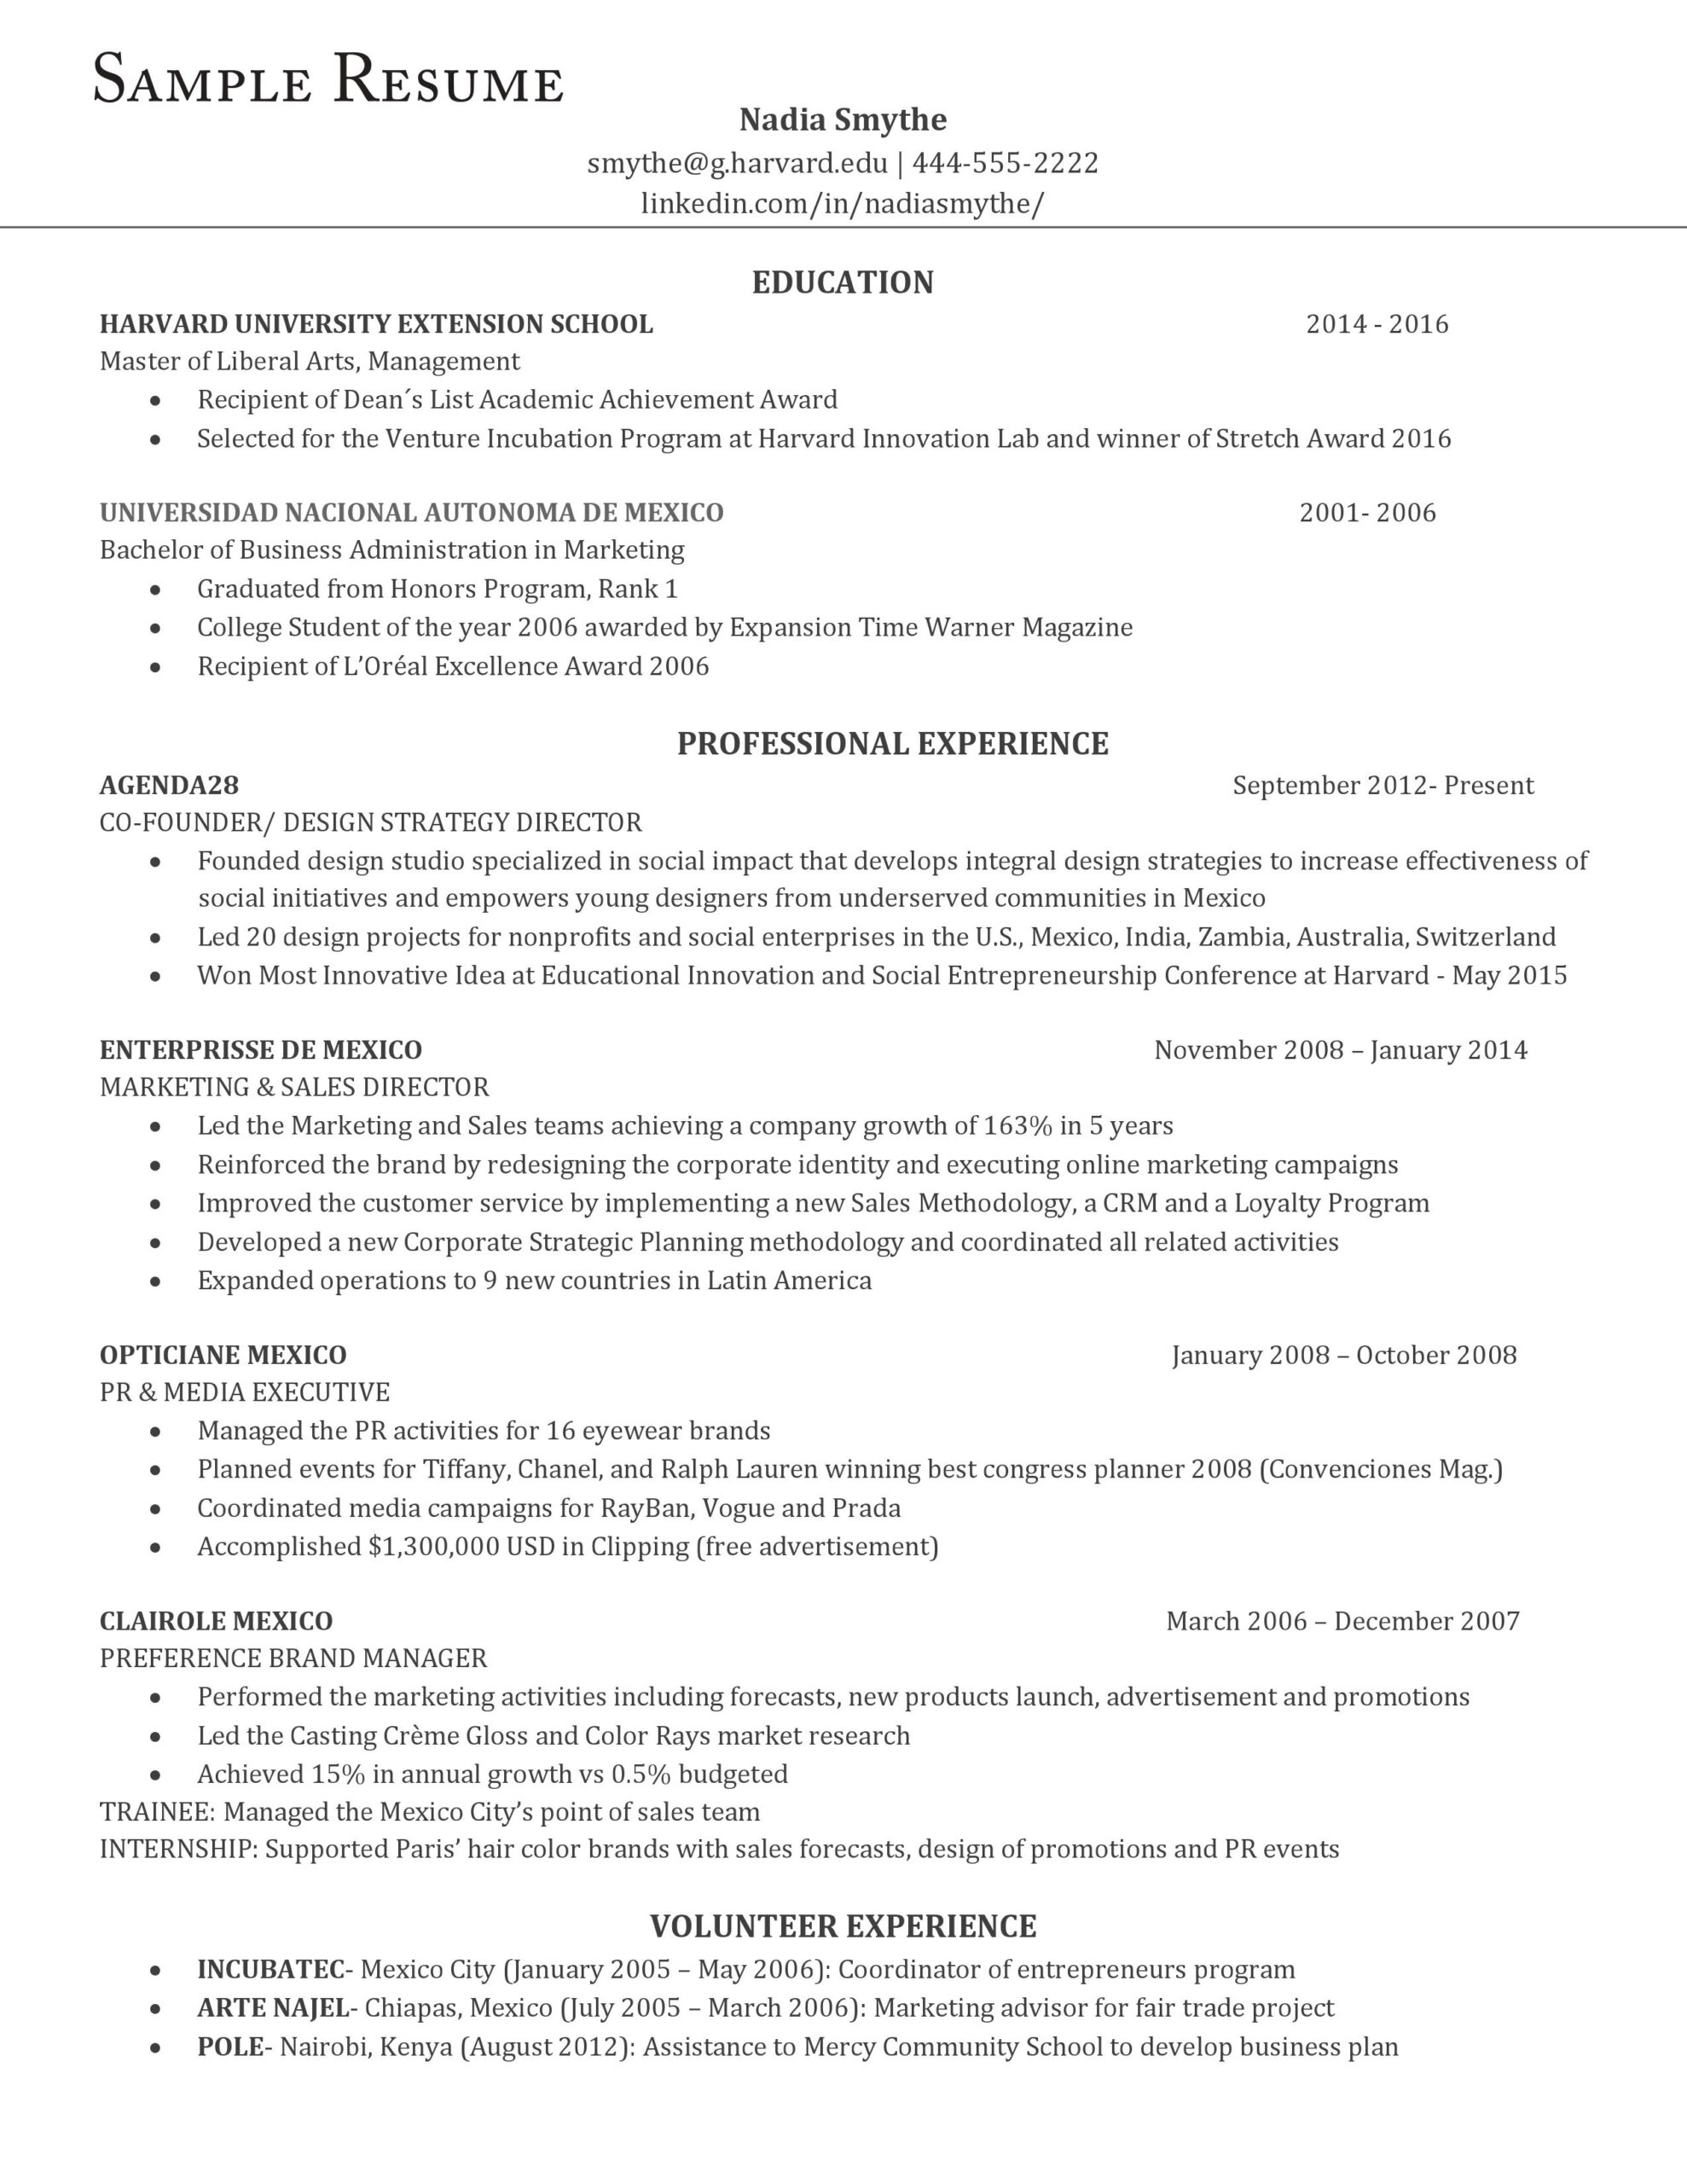 an example of the perfect resume according to harvard career experts guide good writing Resume Guide To A Good Resume